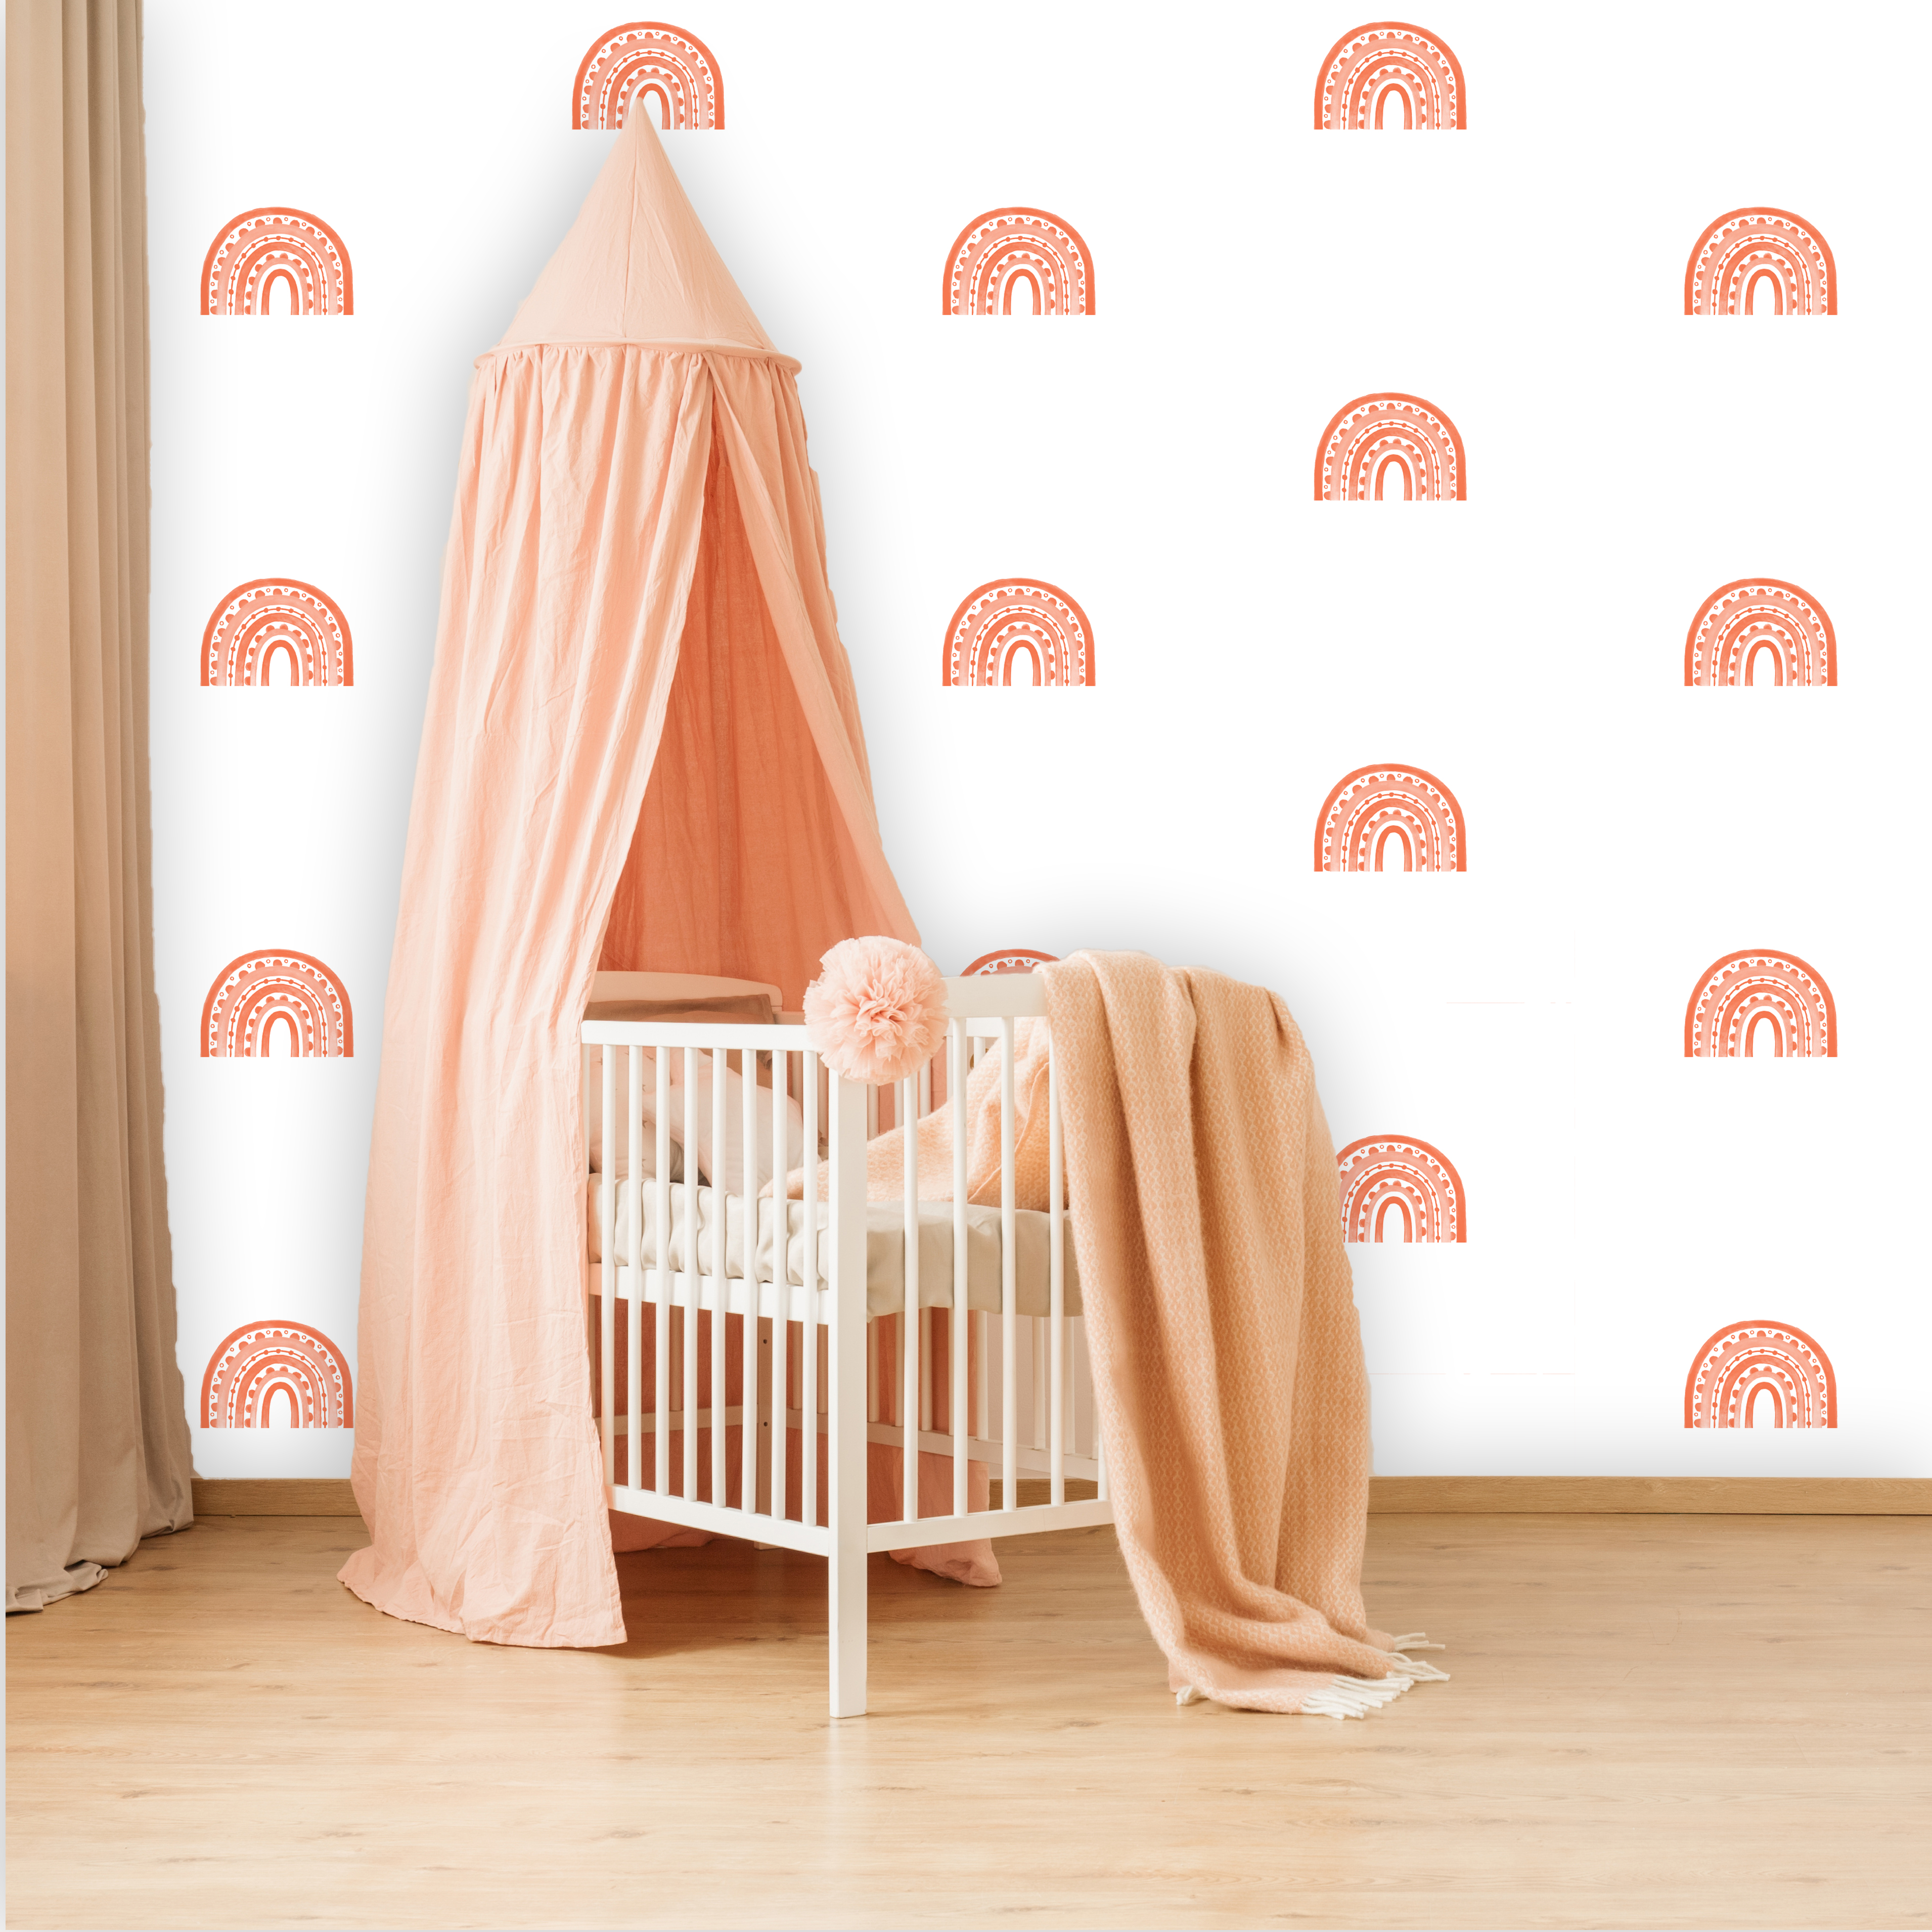 Rainbow Arch Mini in Coral | WALL DECAL